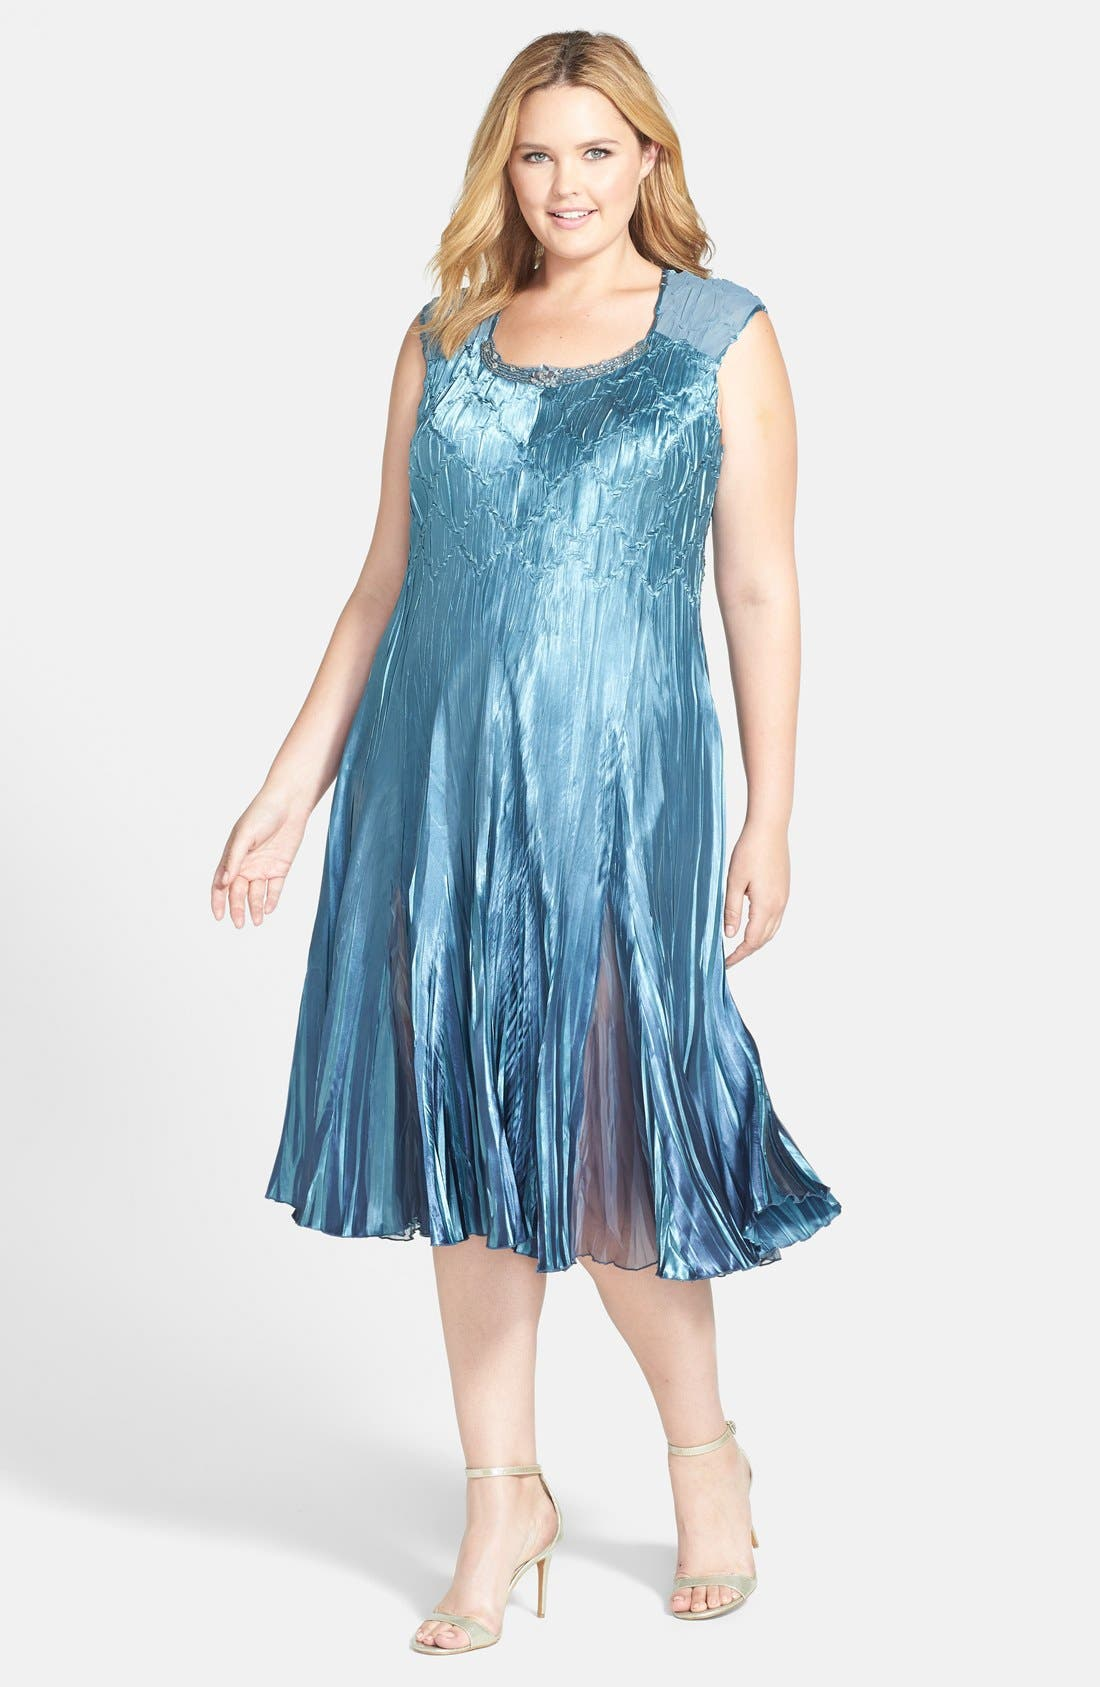 Embellished Charmeuse & Chiffon Dress with Jacket,                             Alternate thumbnail 3, color,                             Silver/ Blue Ombre